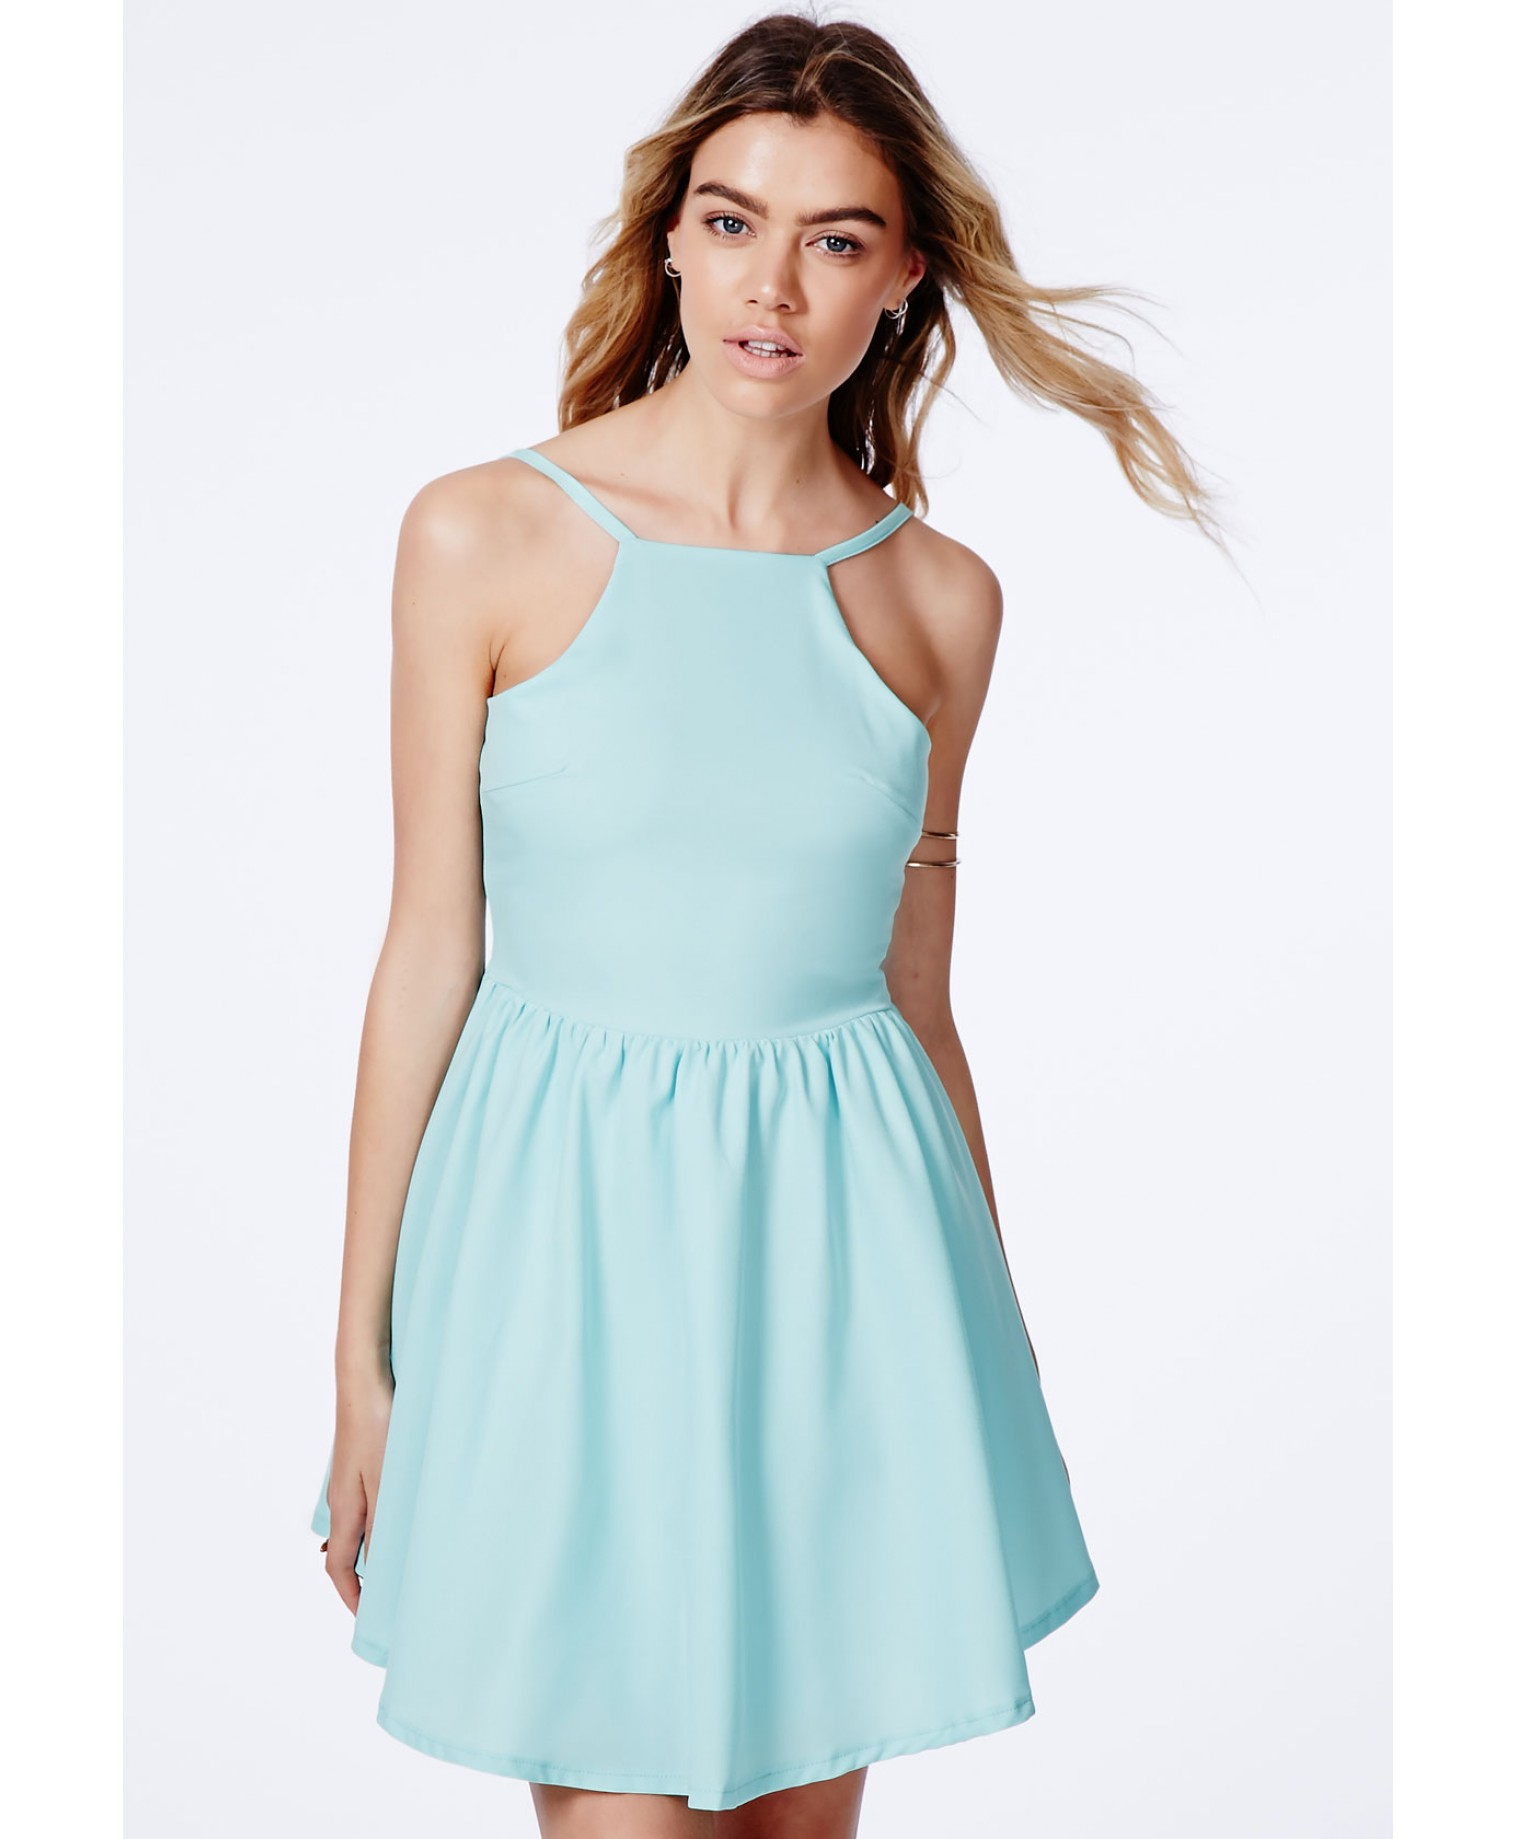 Missguided Eleta Strappy Puffball Skater Dress In Mint in Green - Lyst